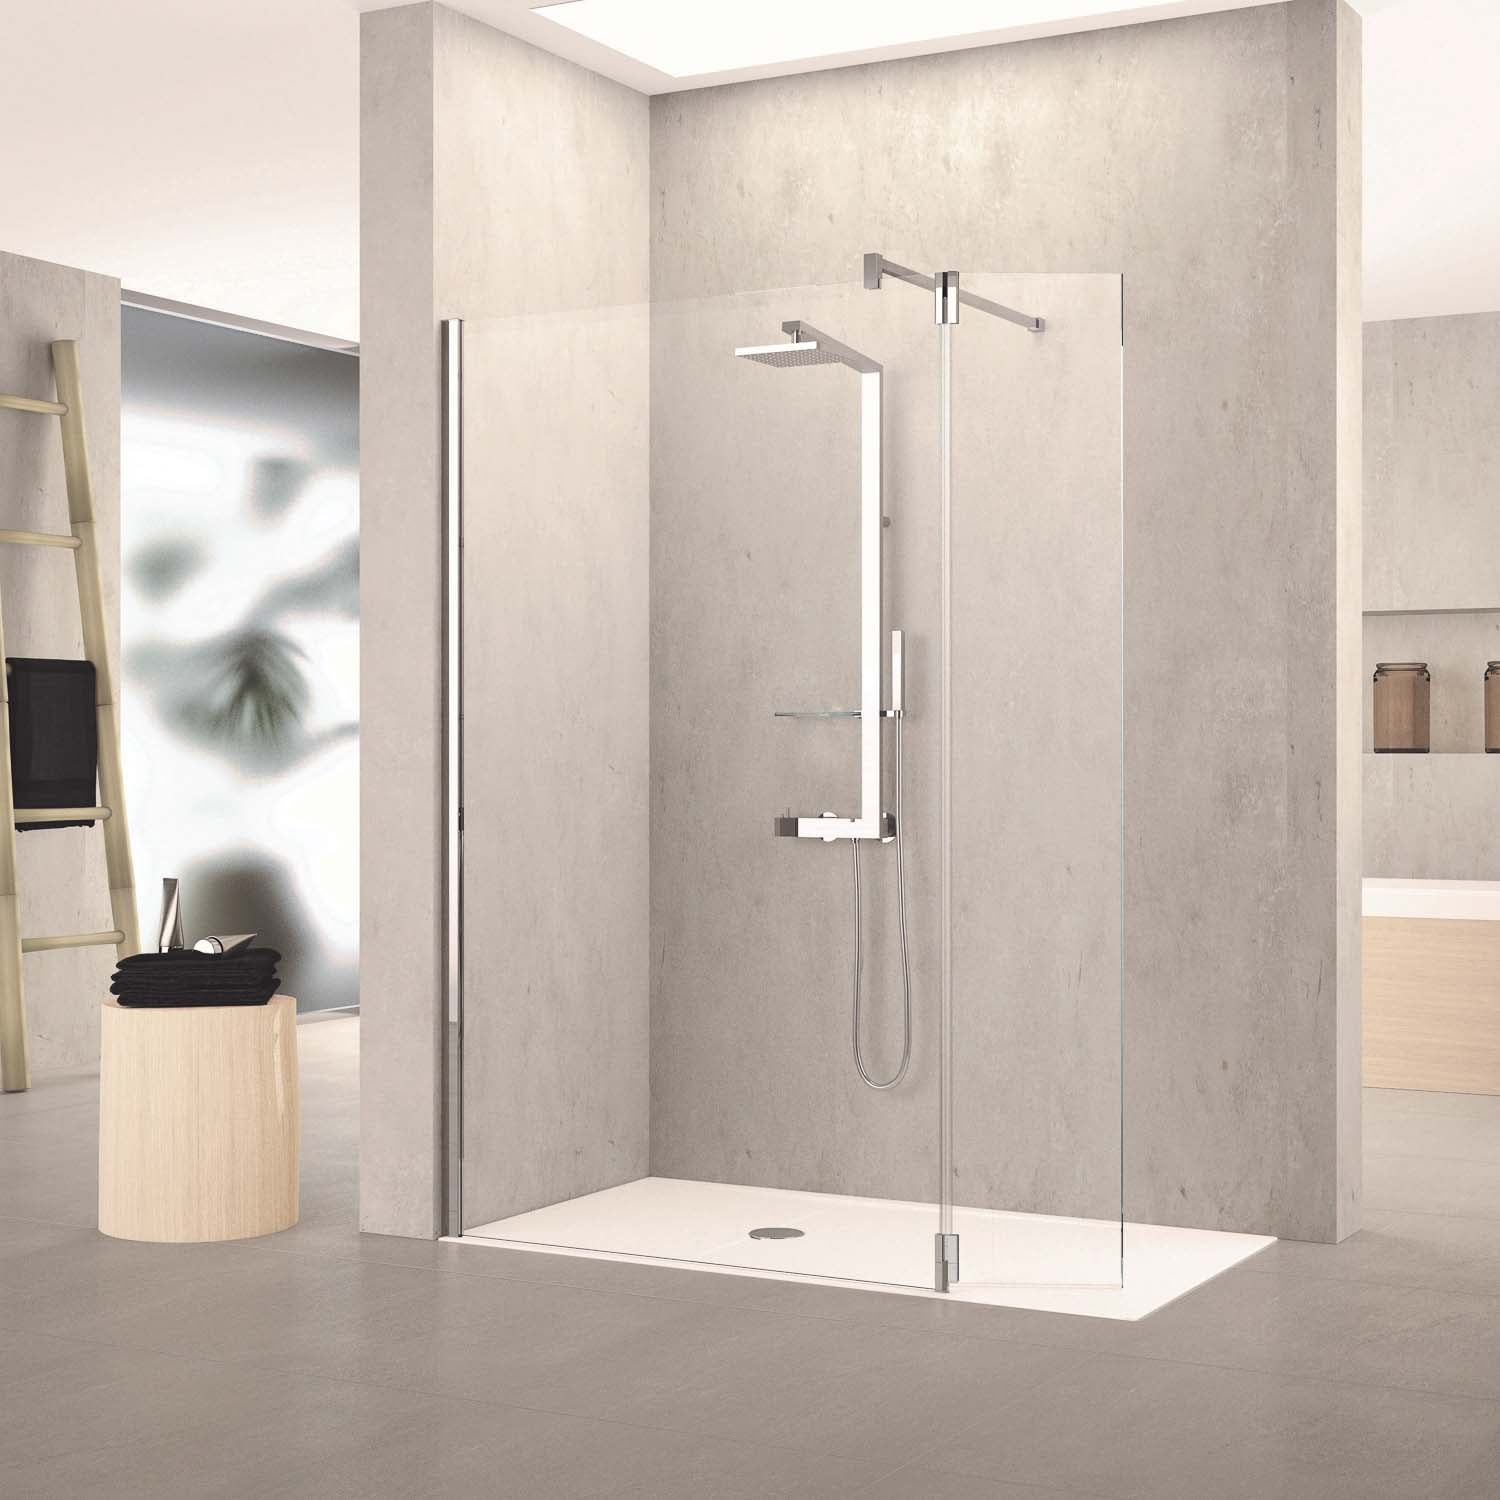 770-800mm Ergo Wet Room Screen Clear Glass with a chrome finish lifestyle image